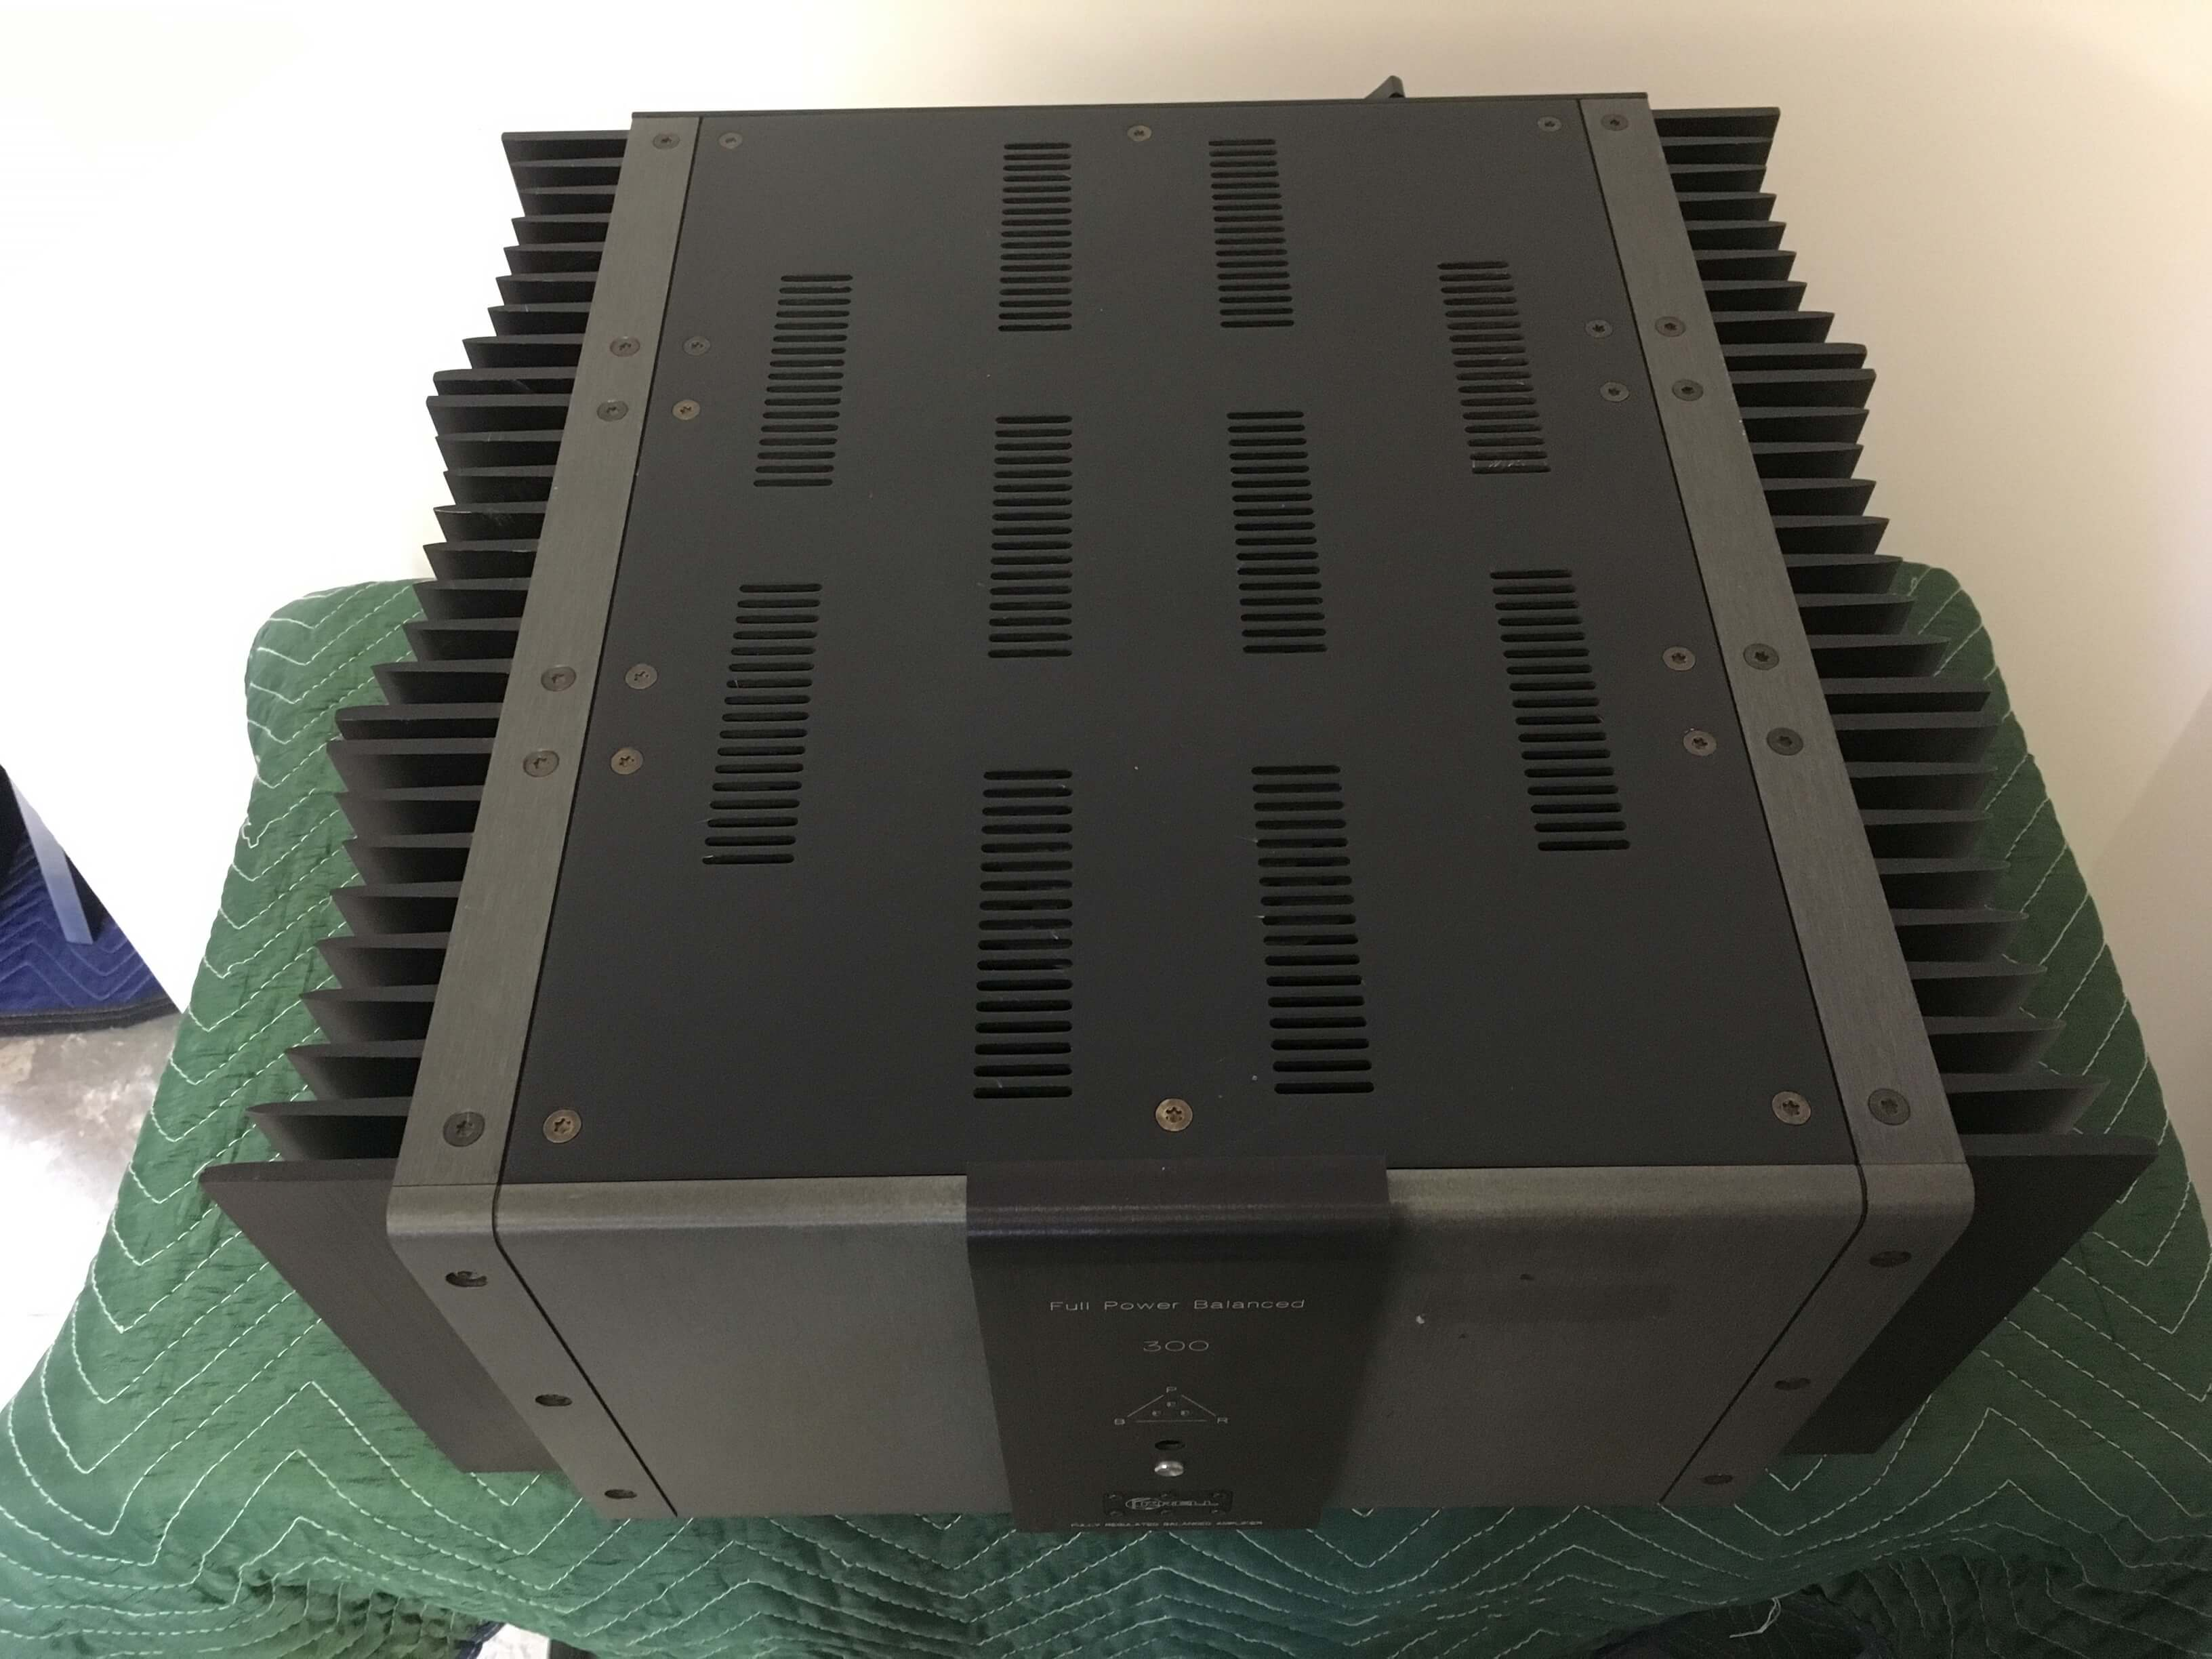 Krell FPB 300 amplifier